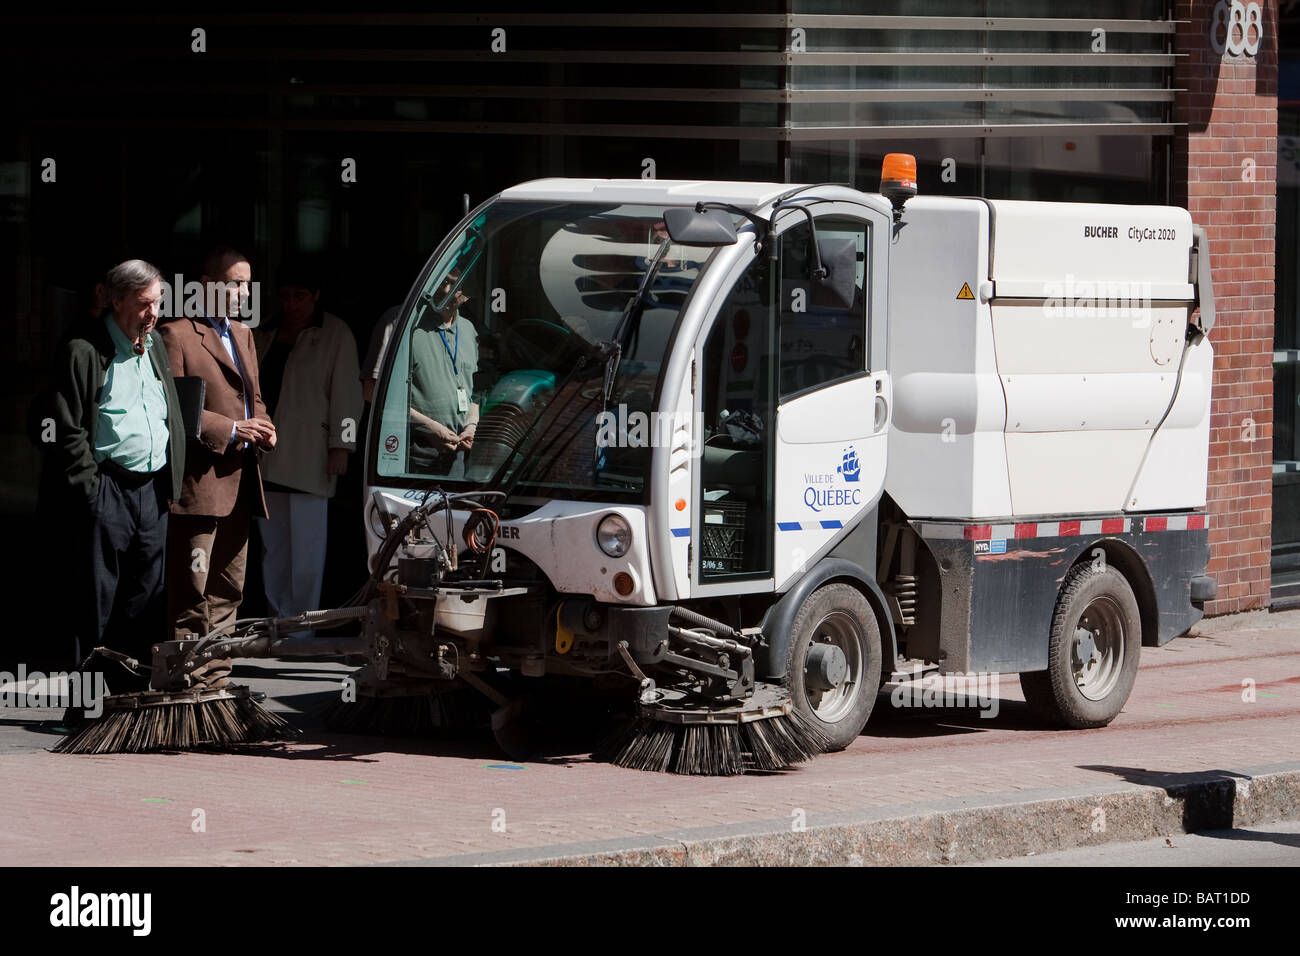 A Bucher Citycat 2020 street washer is seen on the rue St Jean street sidewalk in Quebec city Stock Photo